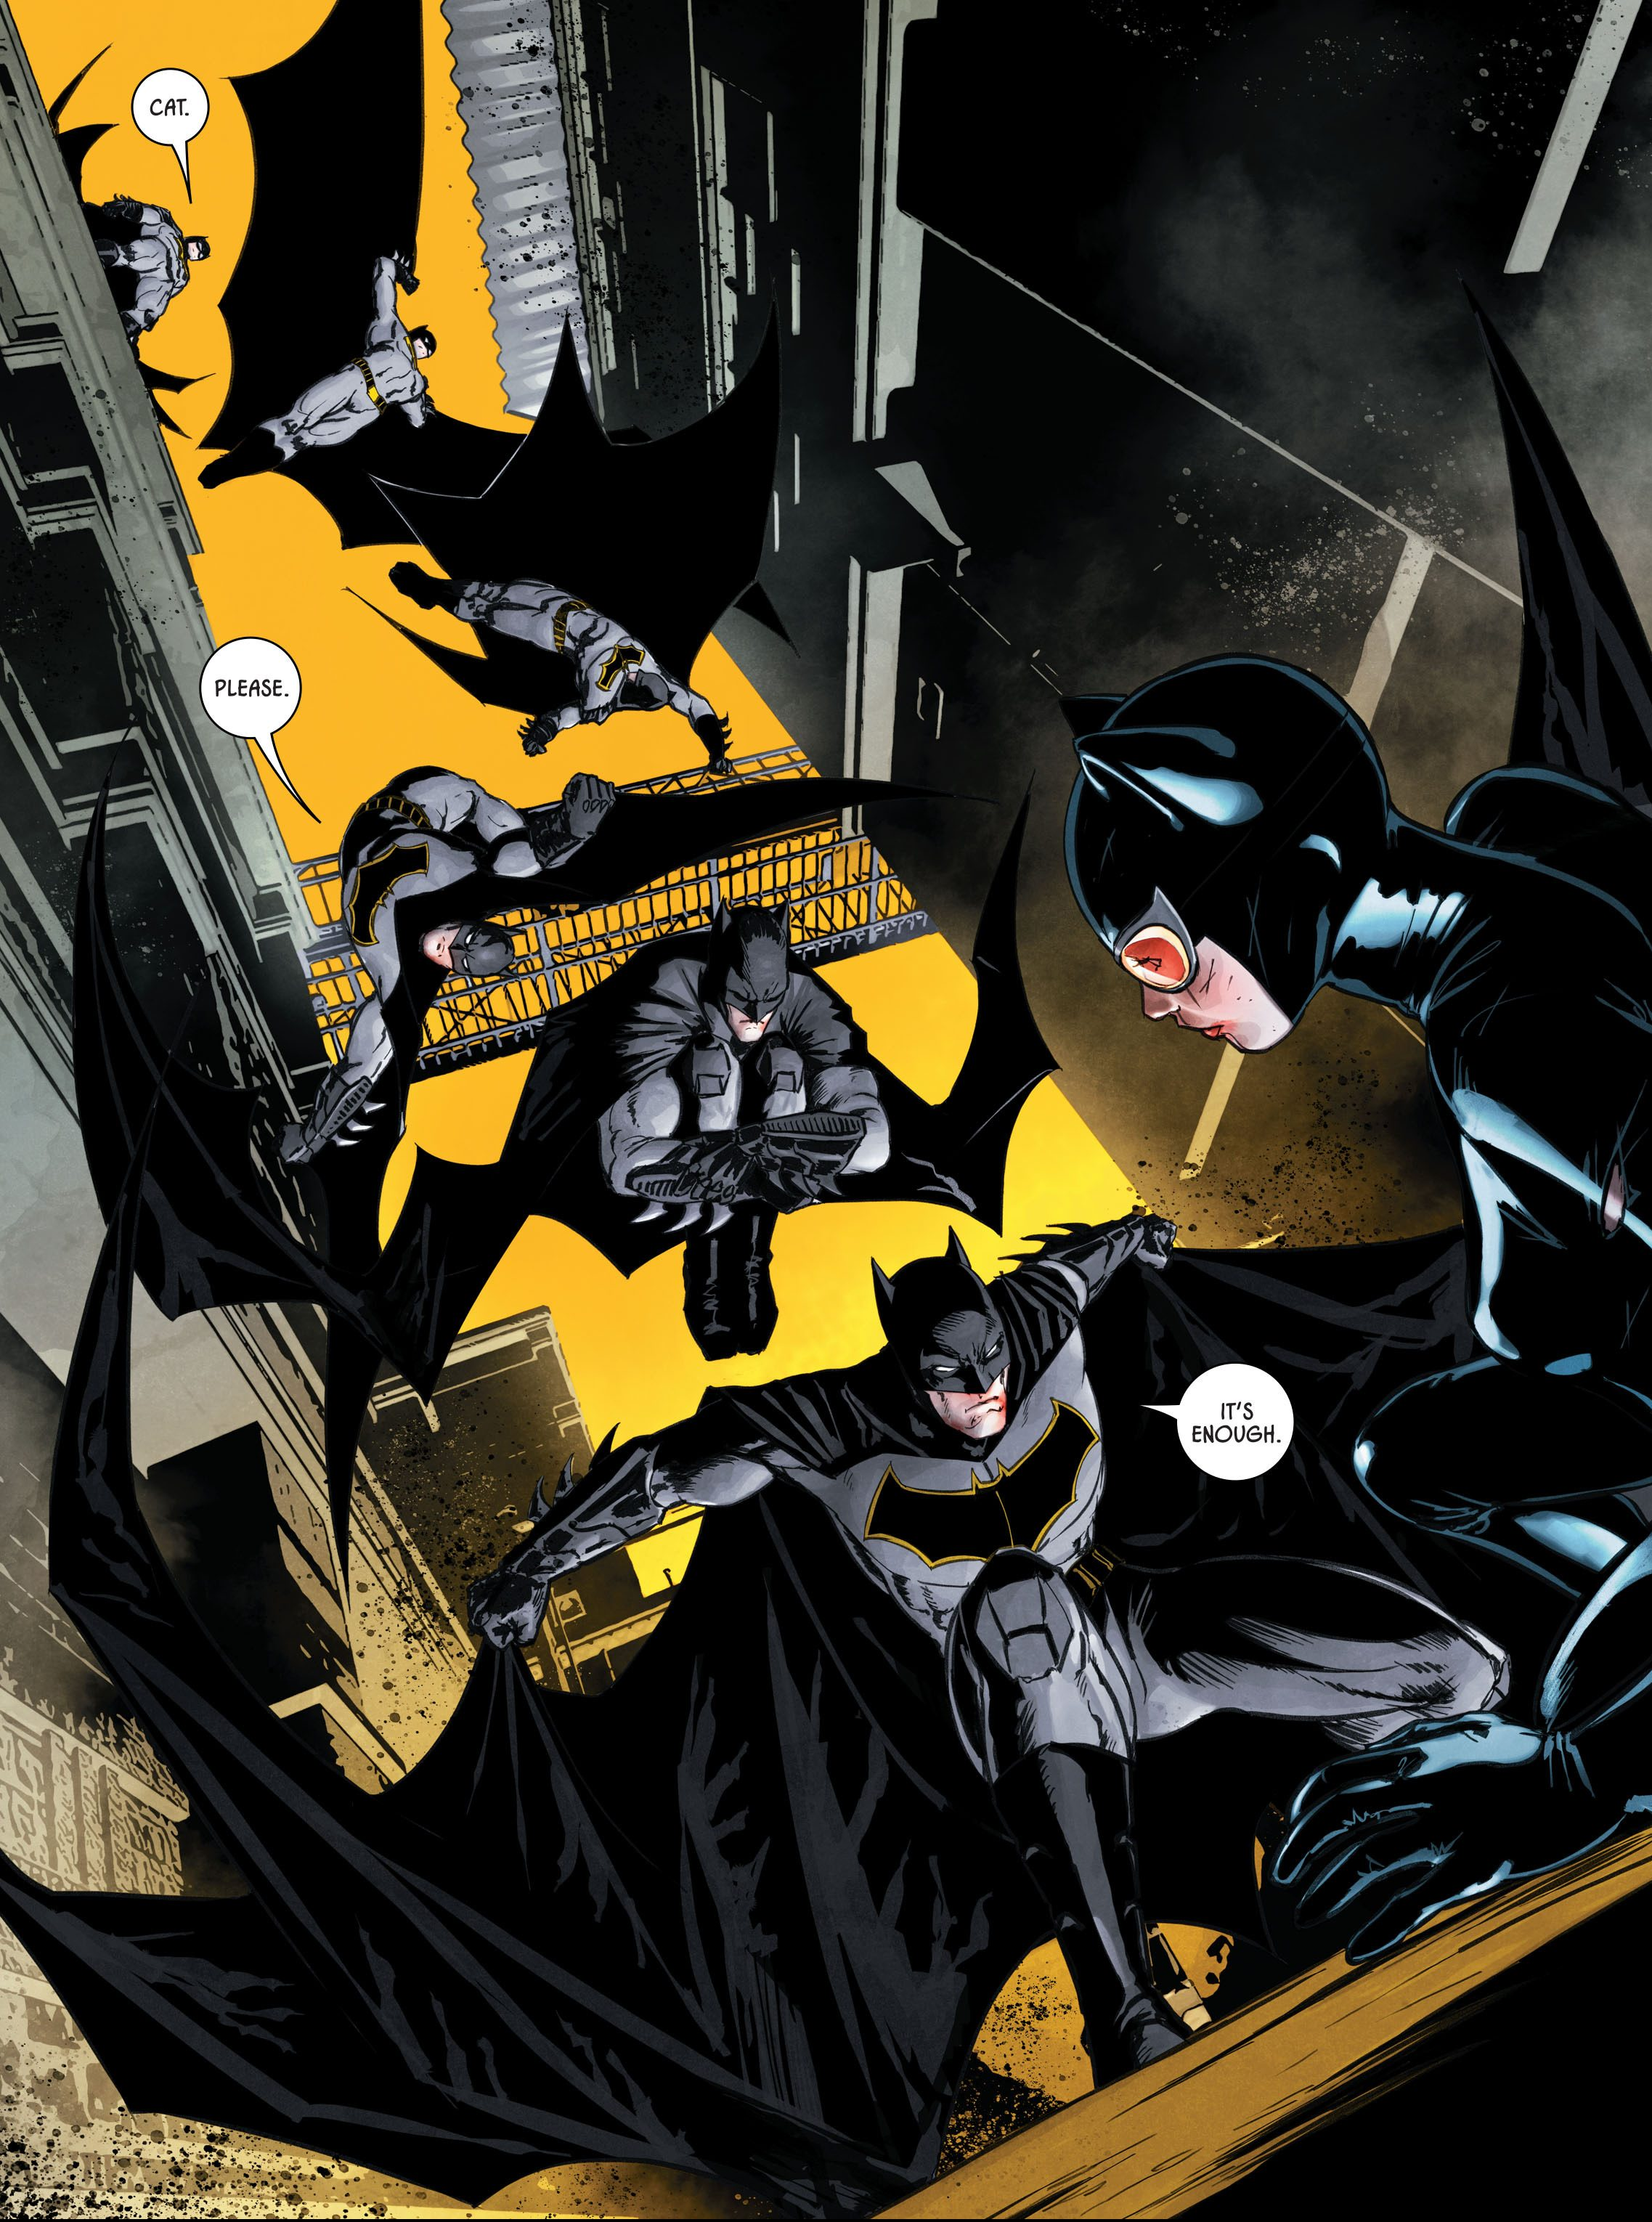 Batman And Catwoman (Batman Vol. 3 #11) | Comicnewbies